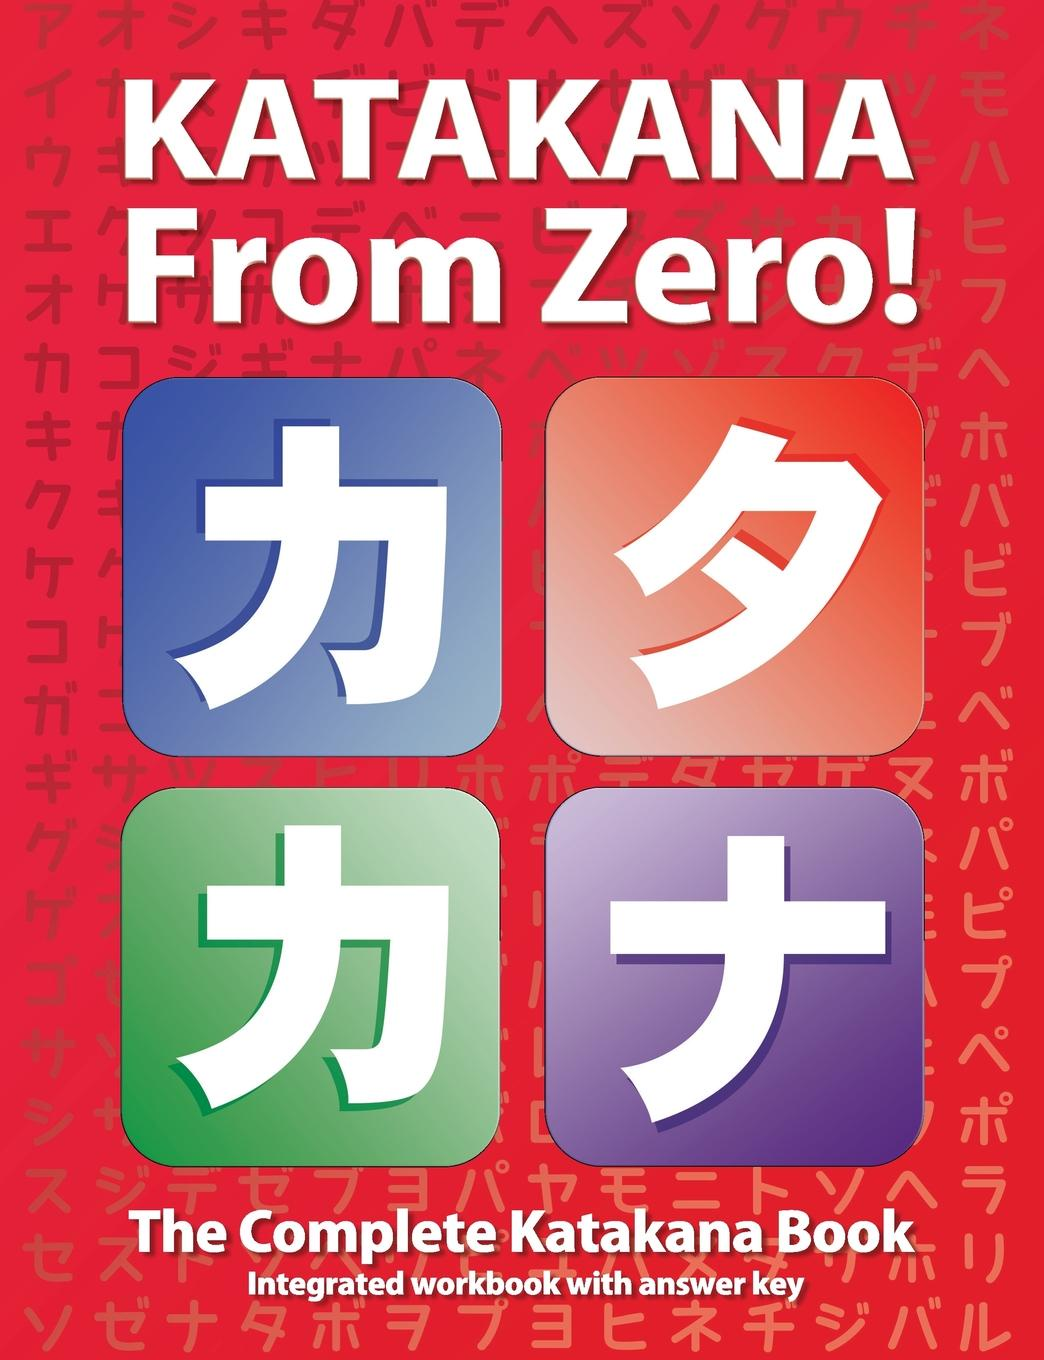 George Trombley Katakana From Zero.. The Complete Japanese Katakana Book, with Integrated Workbook and Answer Key sachiko toyozato japanese for beginners learning conversational japanese second edition includes audio disc